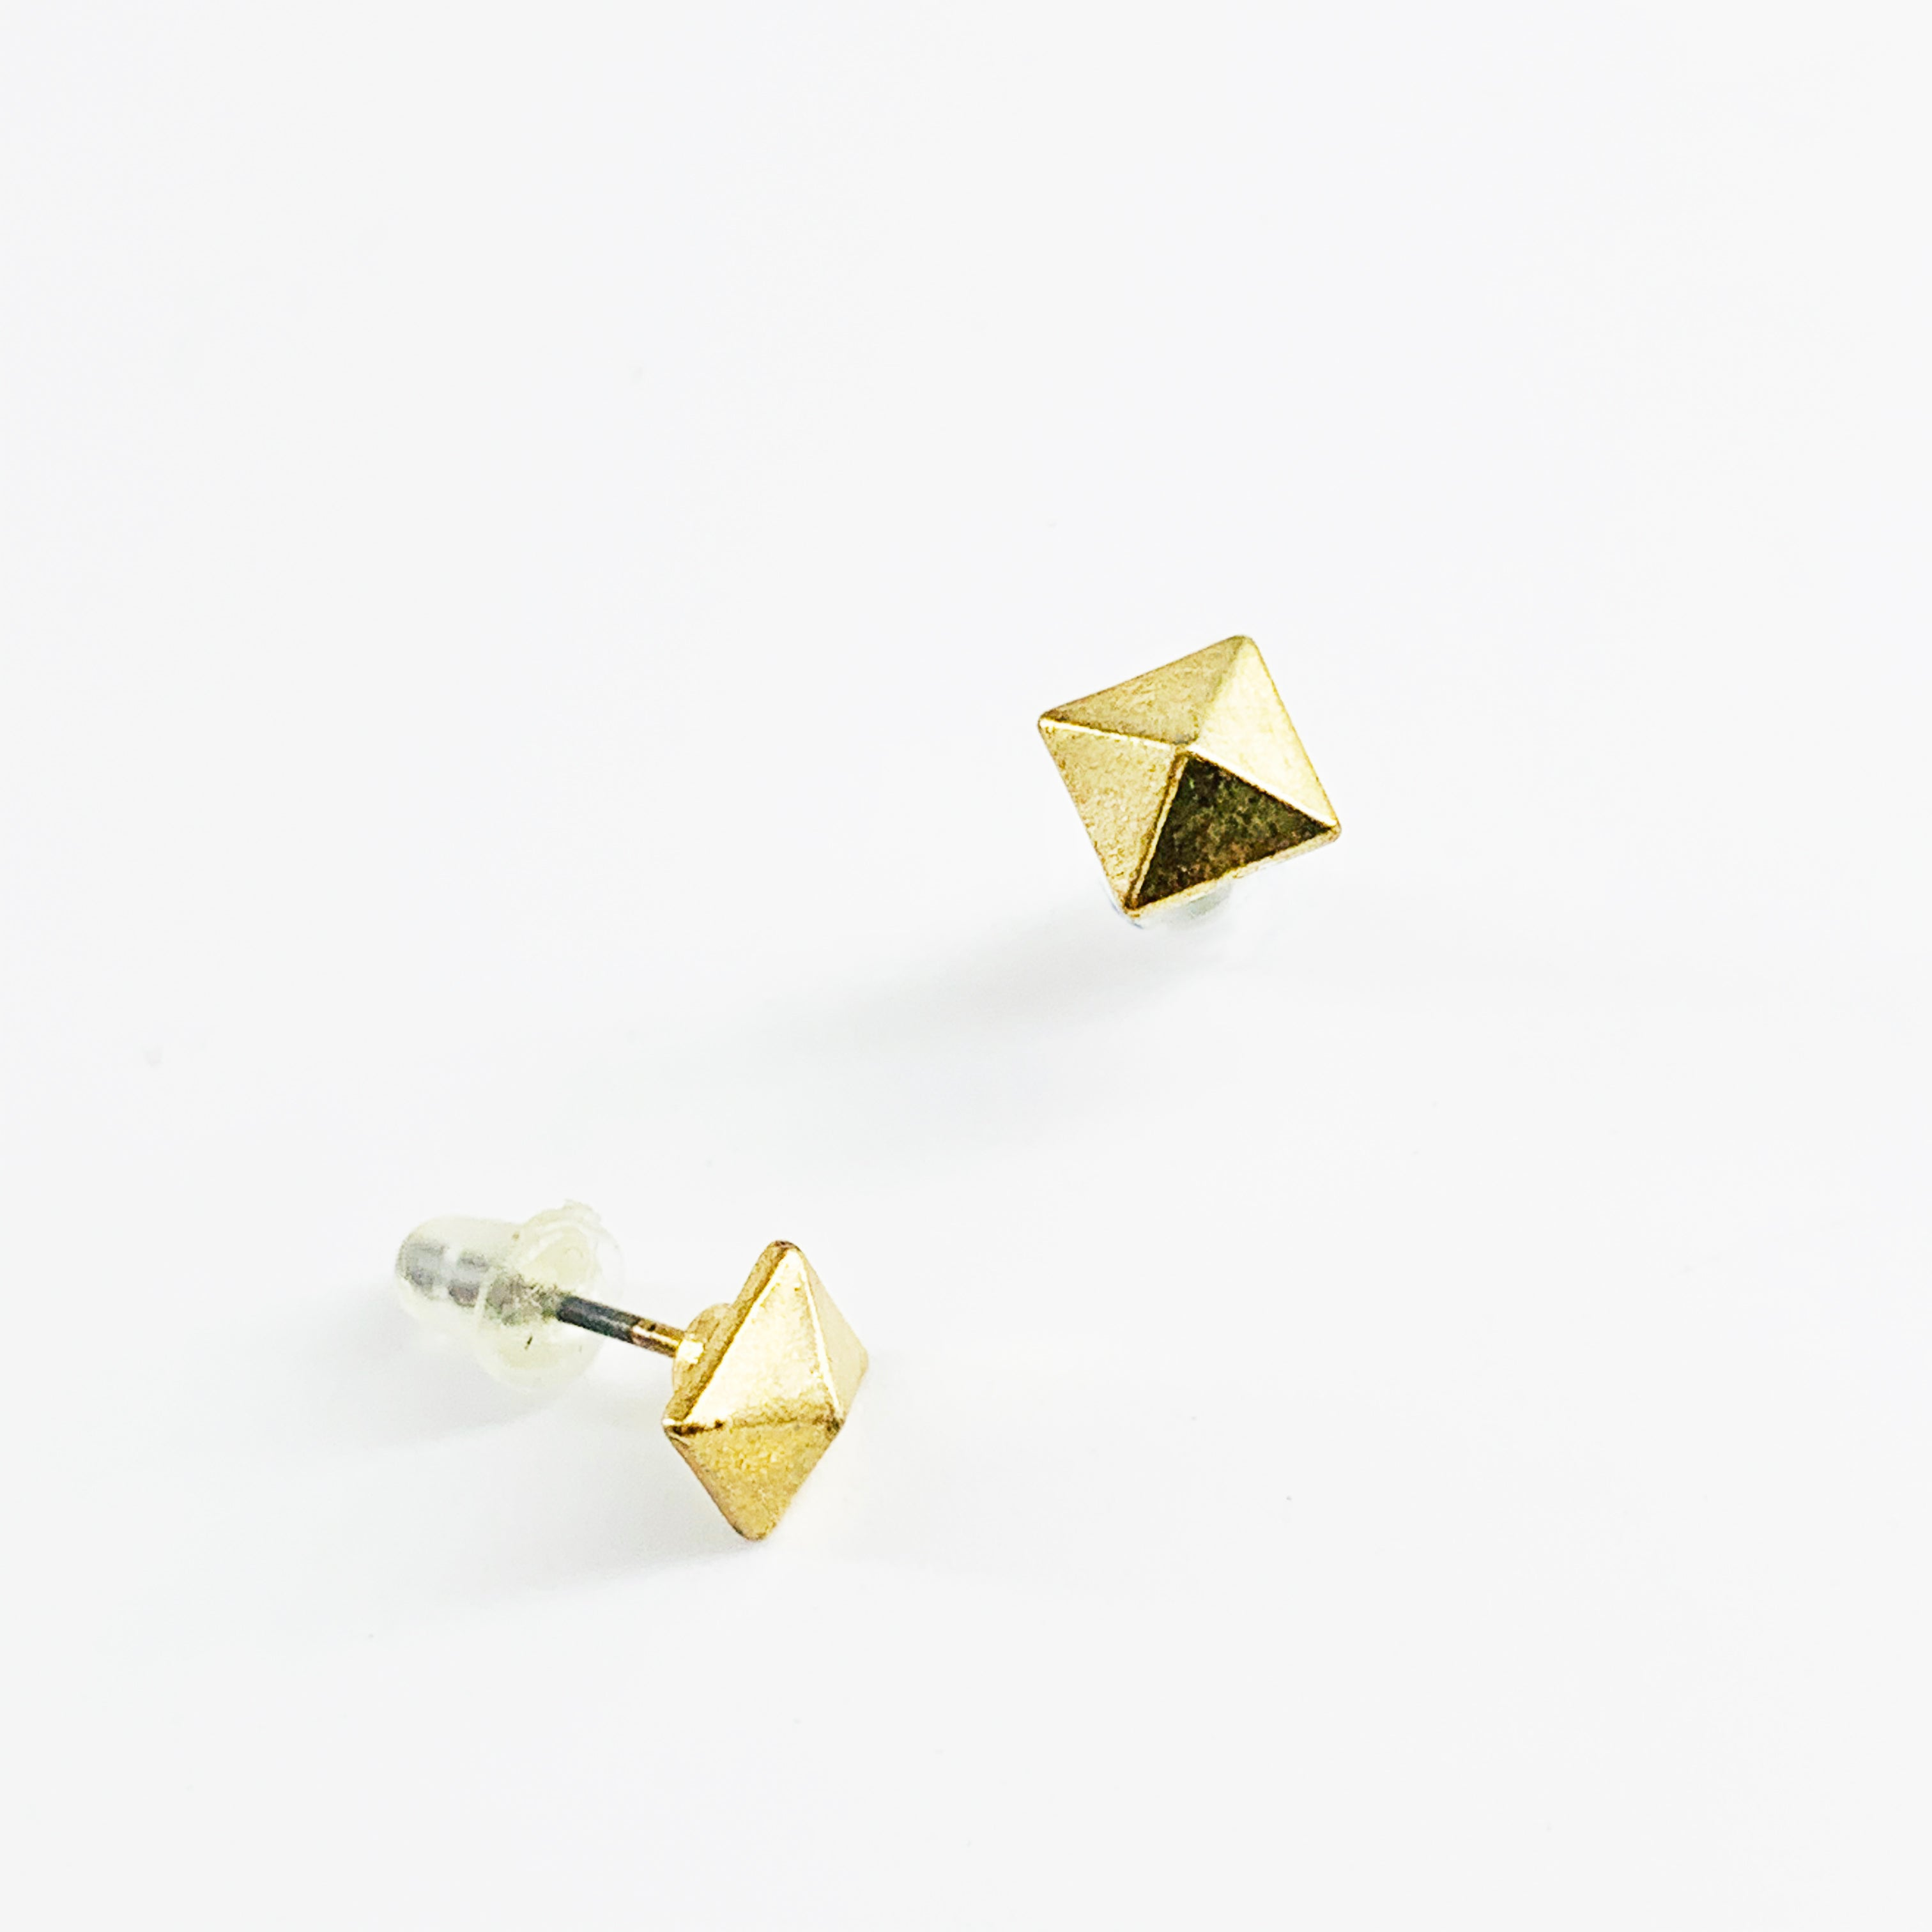 Mini gold pyramid earrings